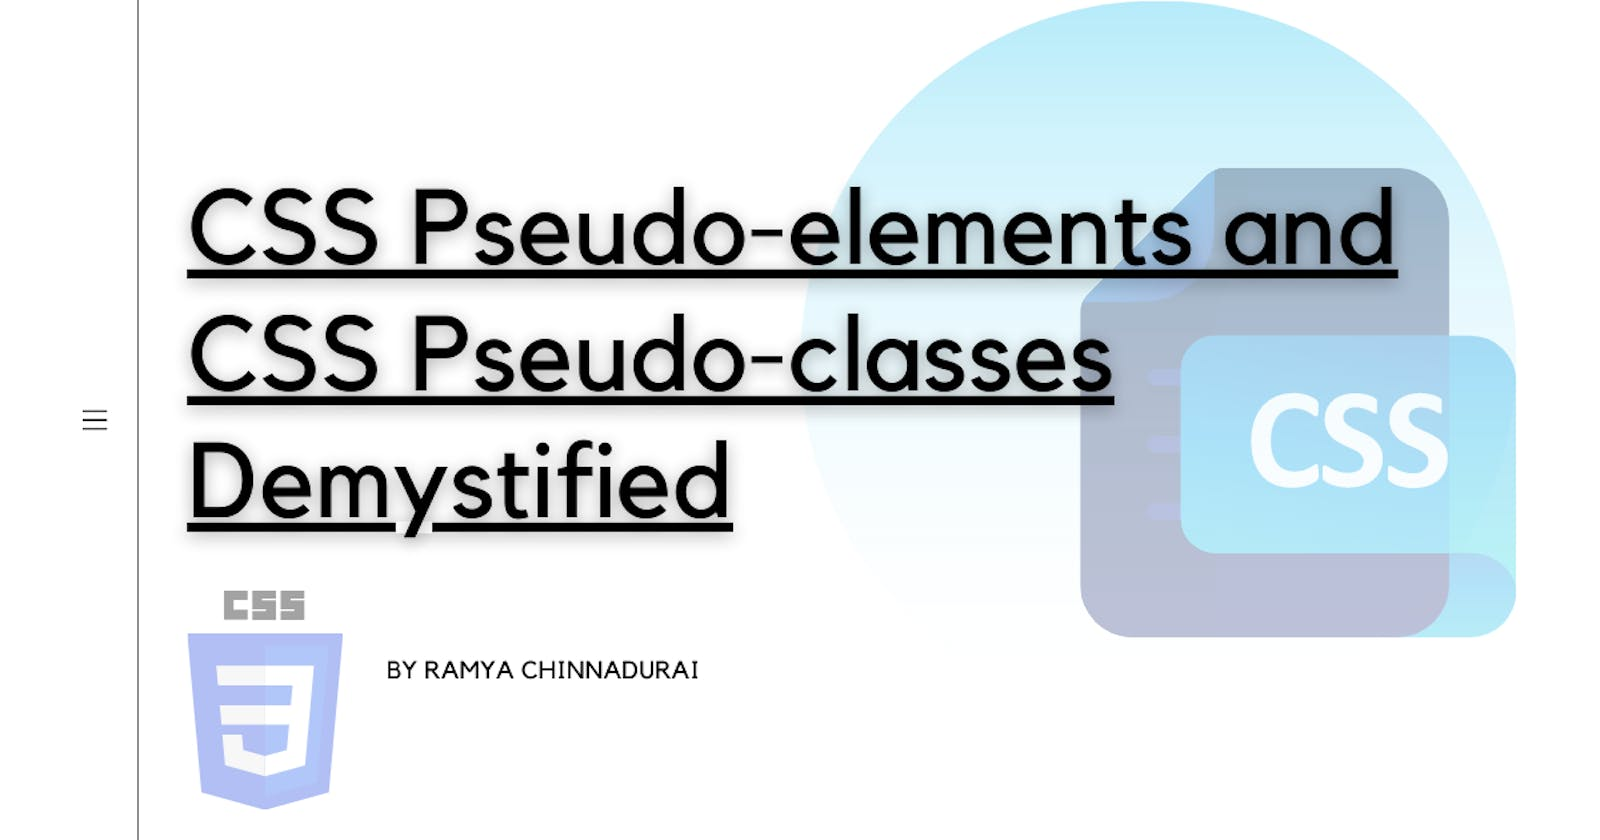 CSS Pseudo-elements and CSS Pseudo-classes Demystified